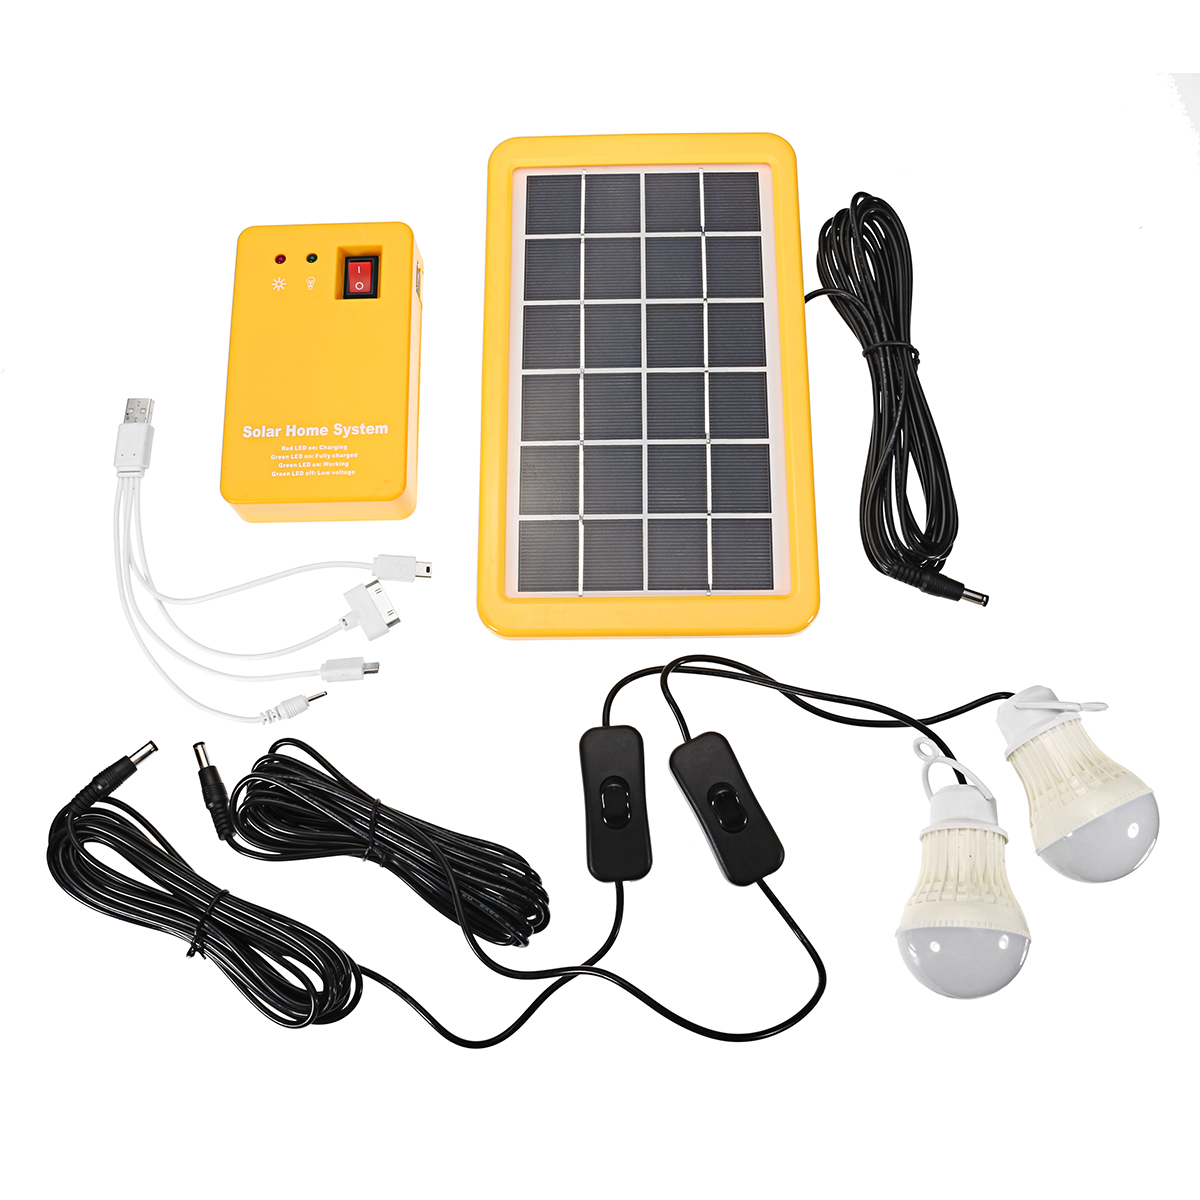 Smuxi 1 Set Solar Power Panel Generator LED Light Bulbs 5V USB Charger Home System Outdoor Garden Solar LampsSmuxi 1 Set Solar Power Panel Generator LED Light Bulbs 5V USB Charger Home System Outdoor Garden Solar Lamps